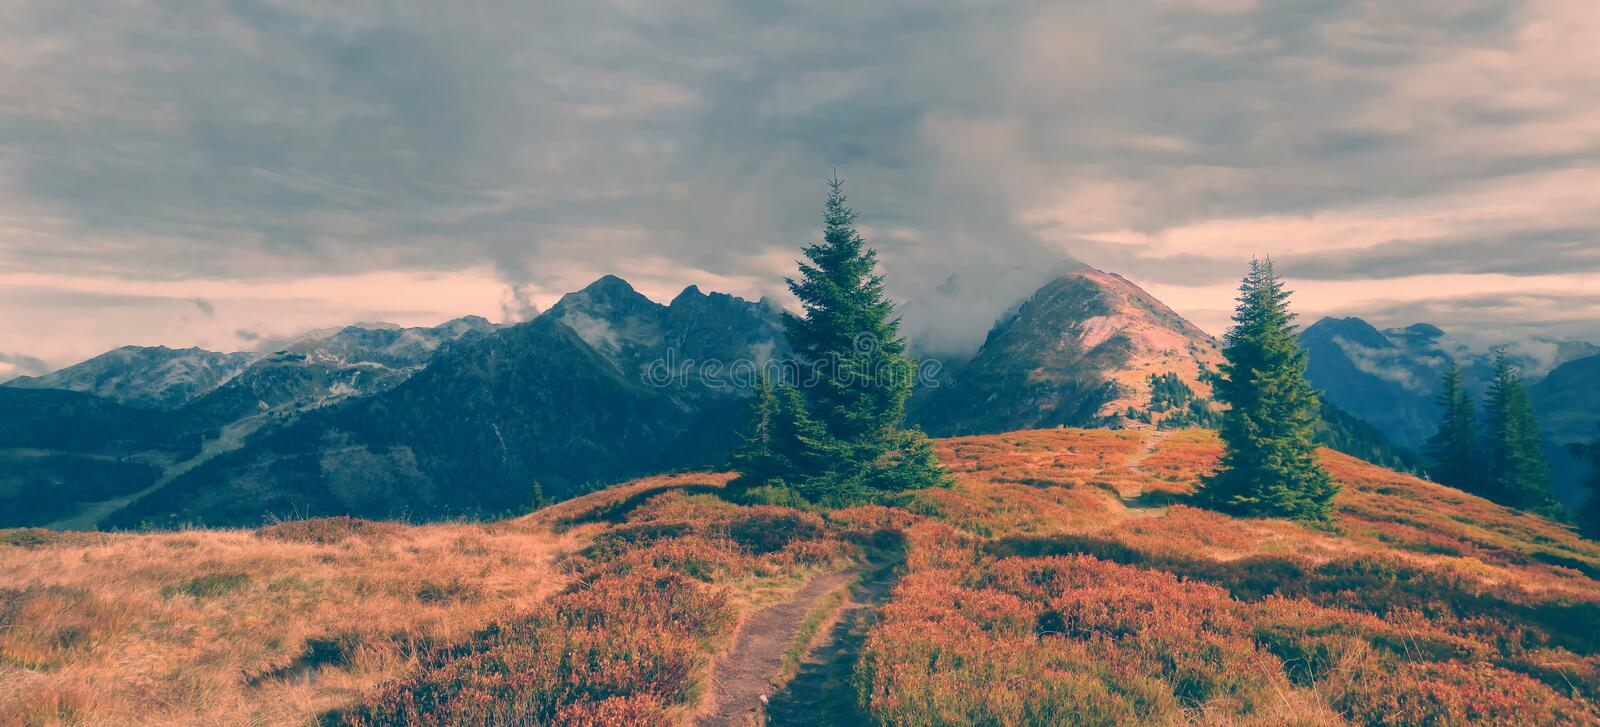 Scenic mountain landscape with hiking path stock photography